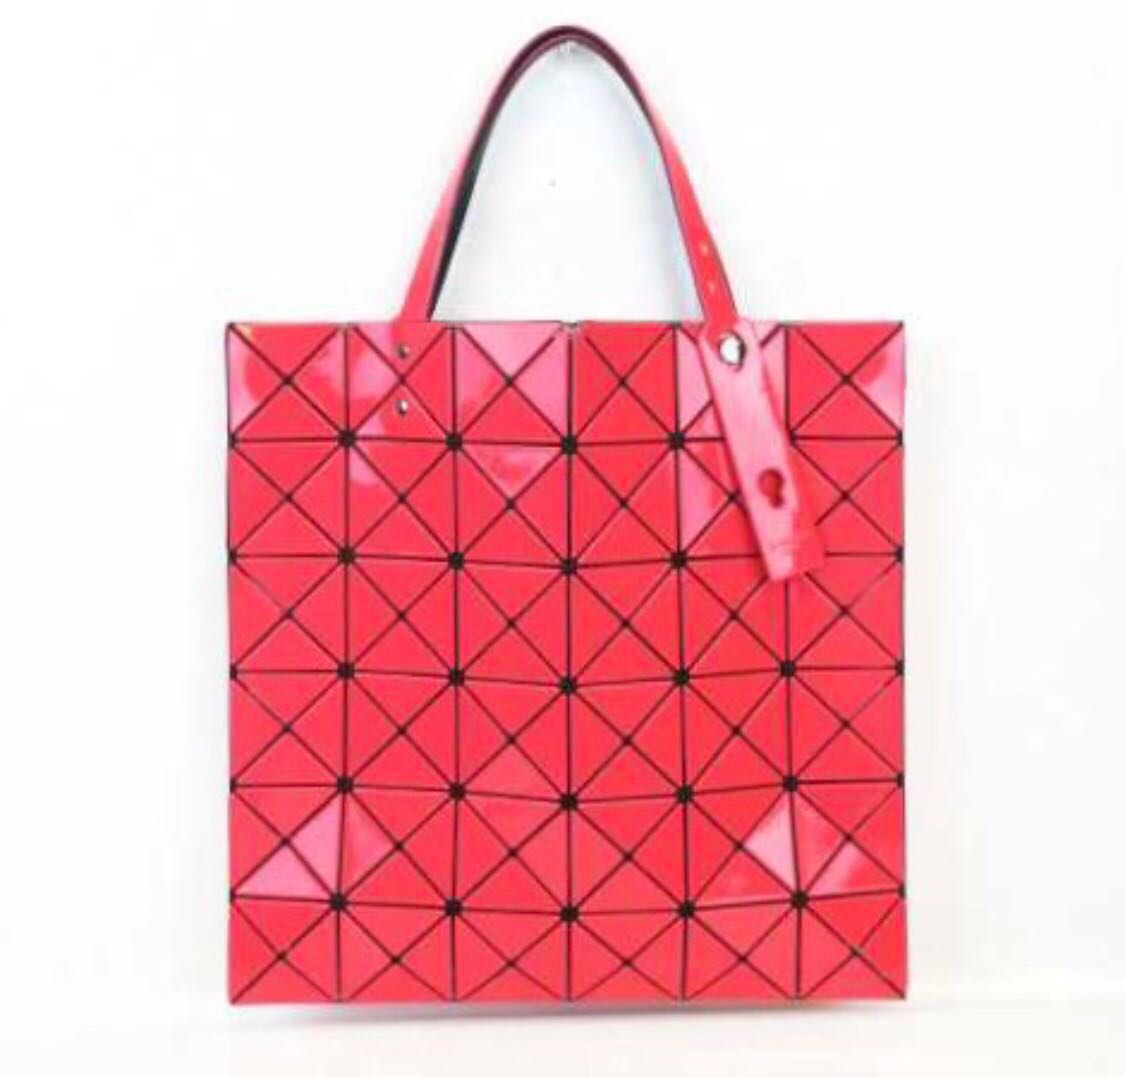 Issey Miyake Baobao Lucent with Colour (red pink) 328eb052fbc76